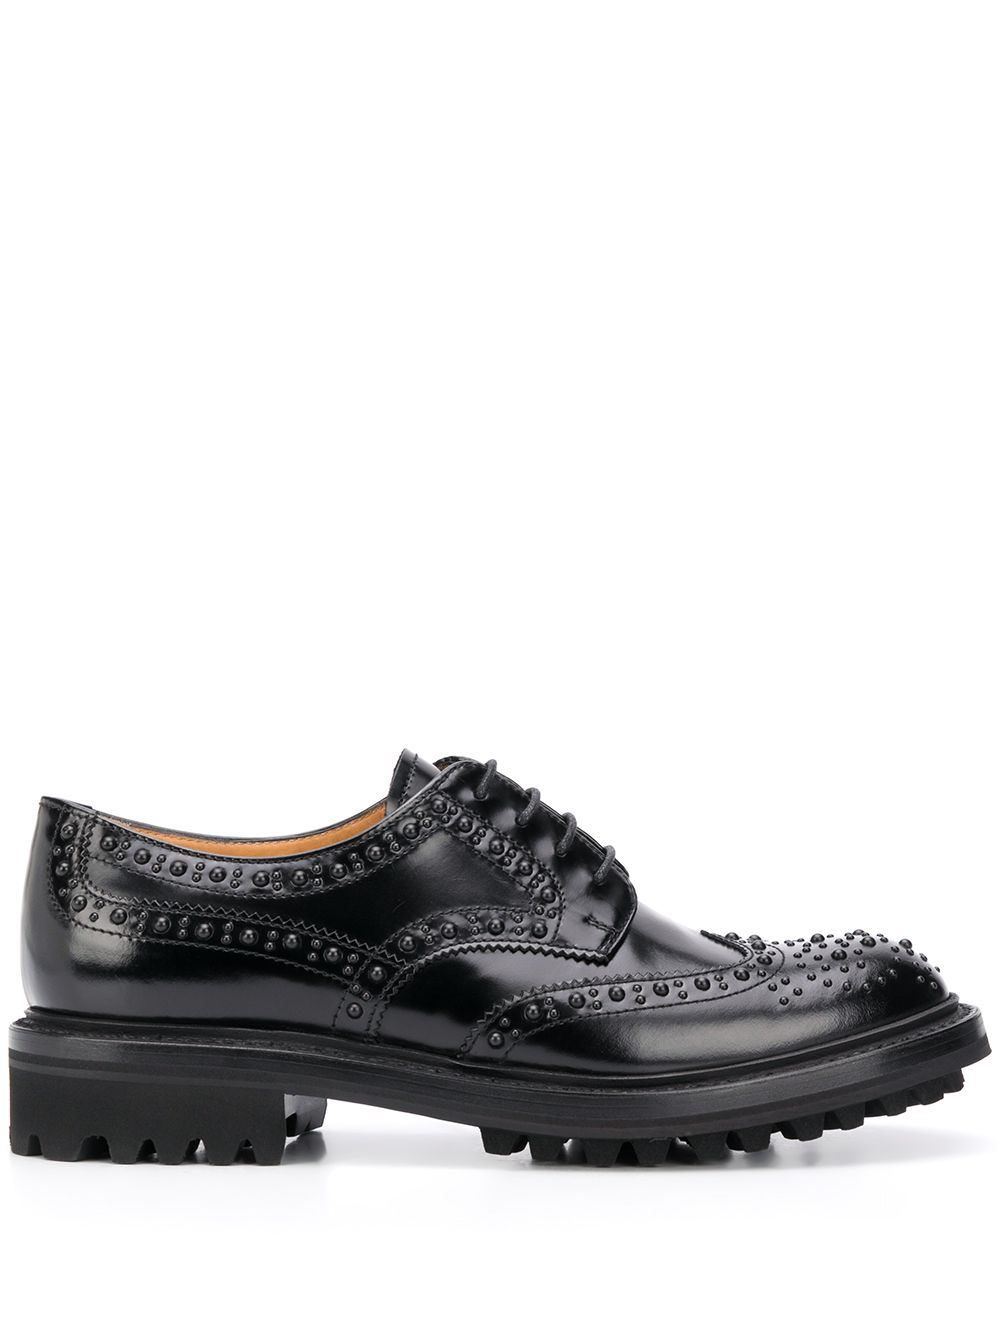 Ethel Leather Brogues